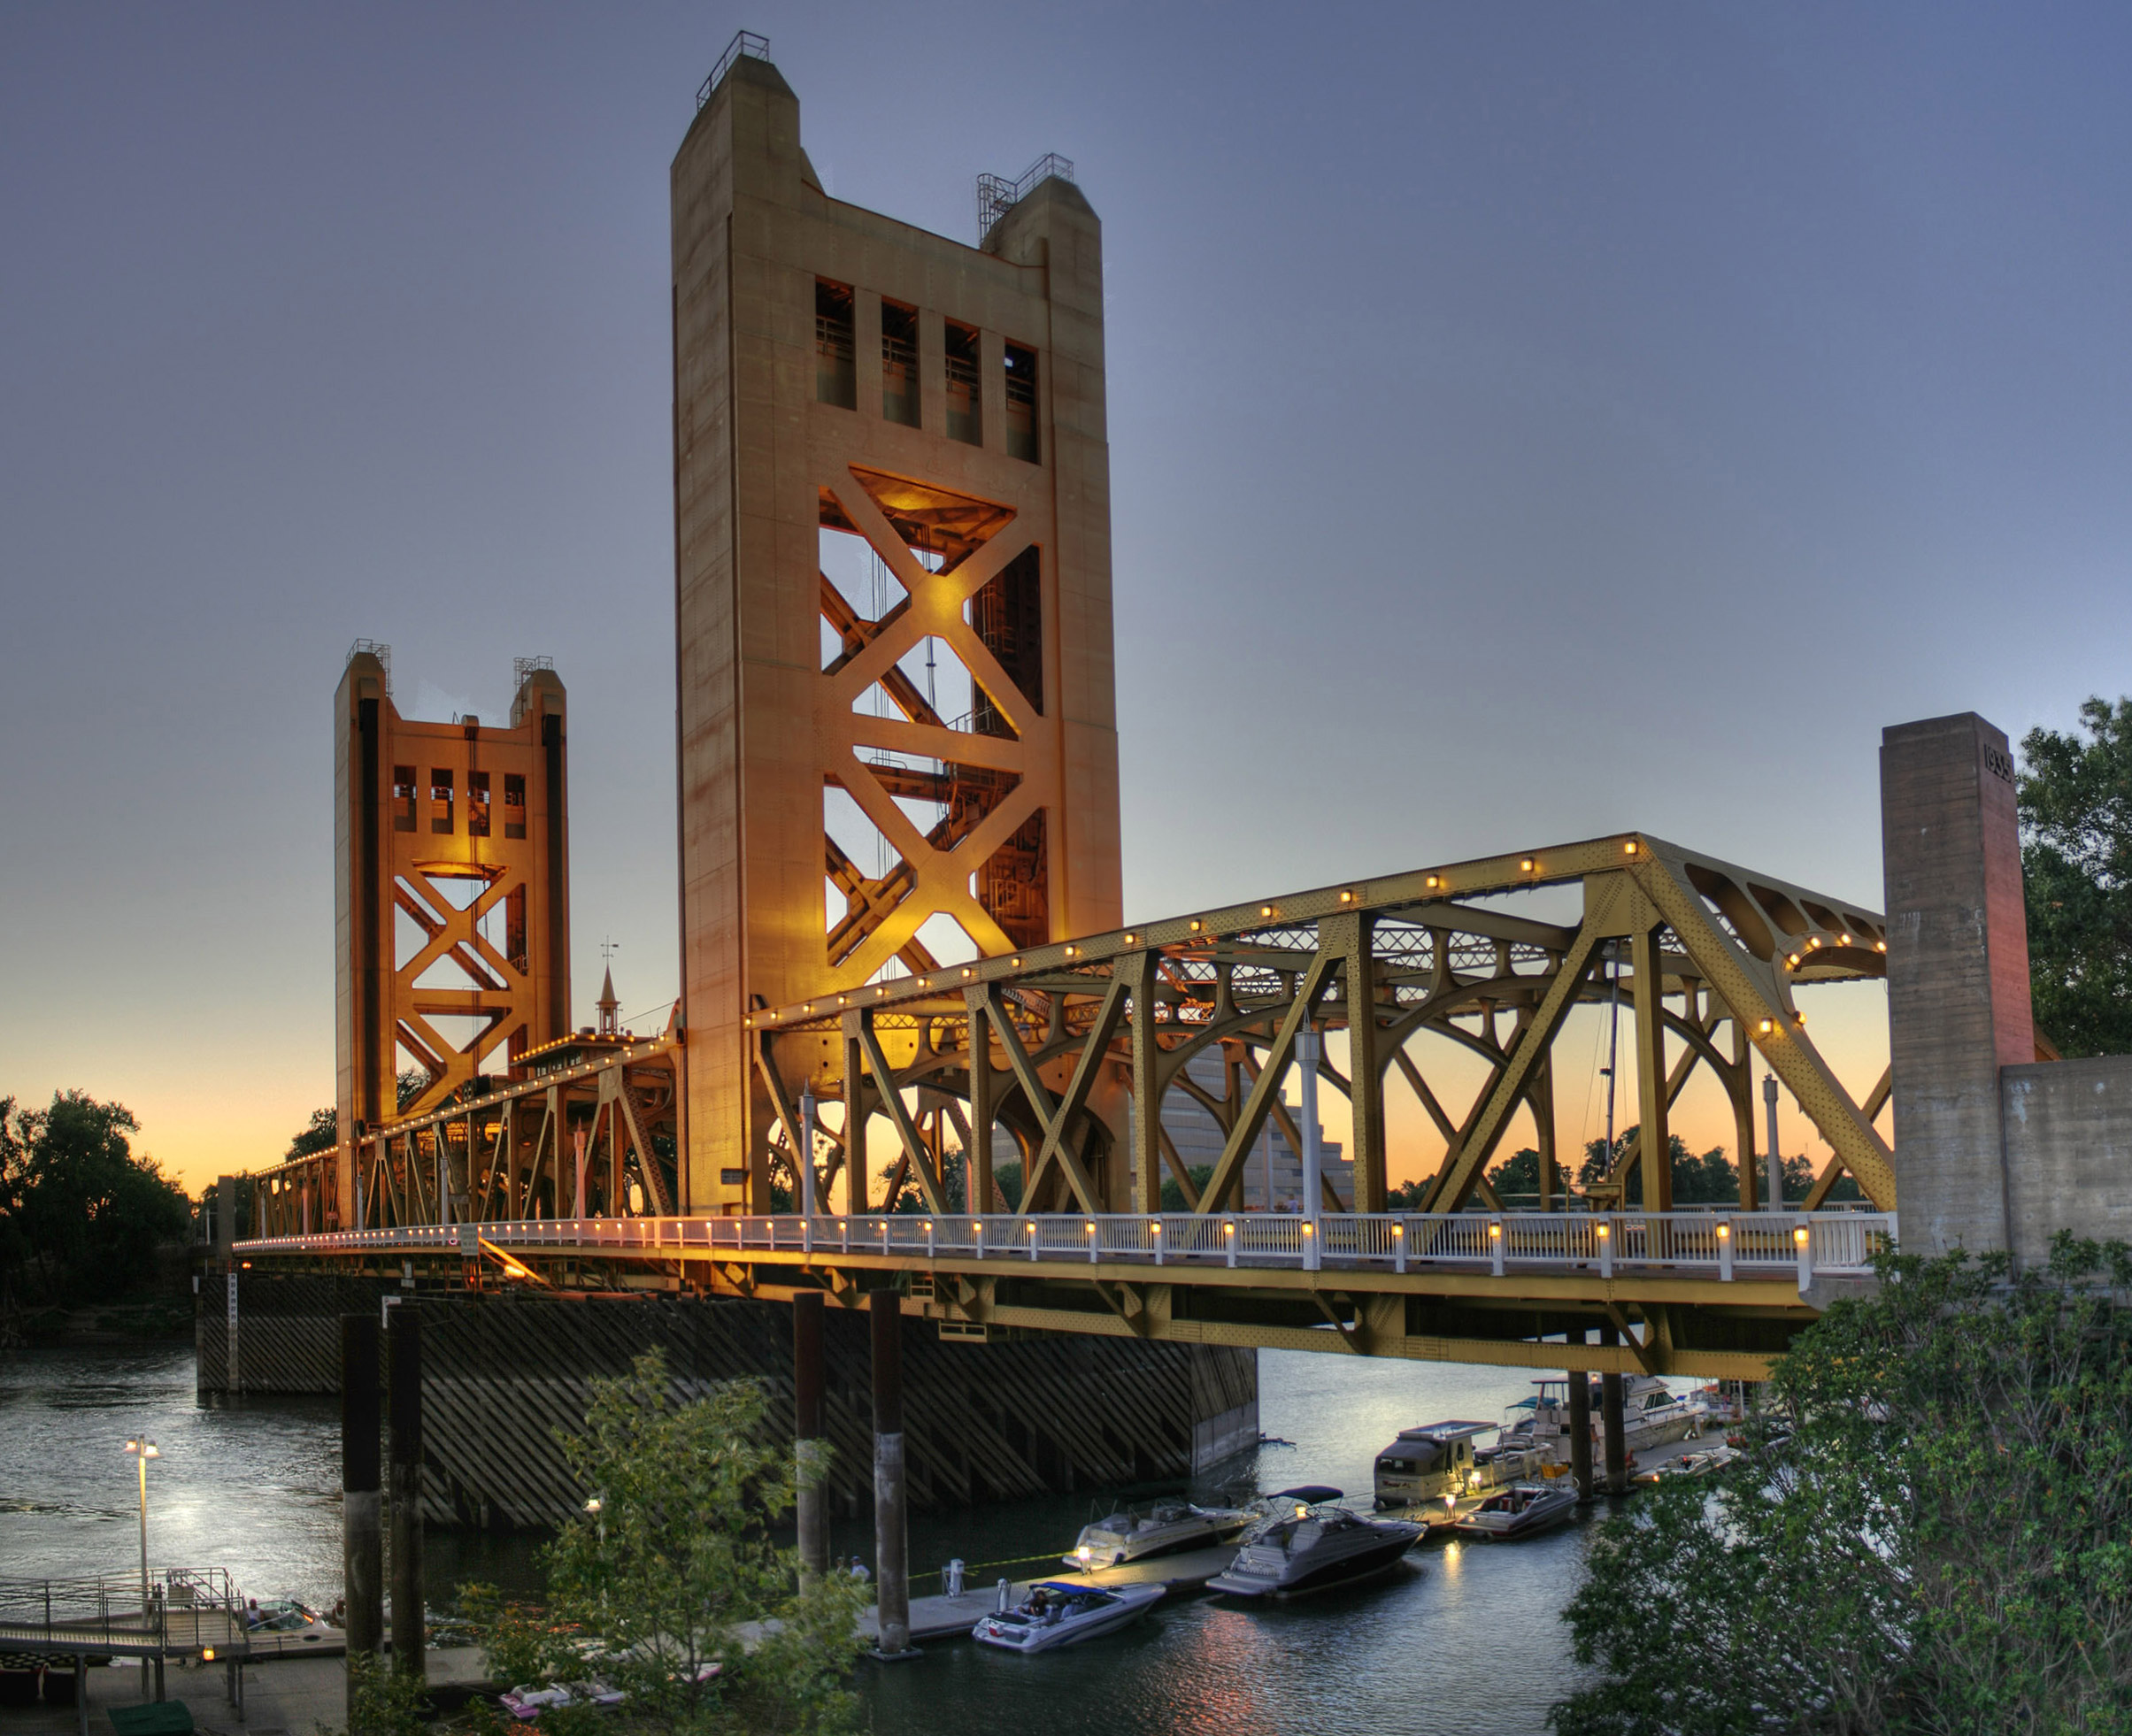 Image taken by Michael Grindstaff of Sacramento, CA from the east side of the Sacramento River as it flows through the city of Sacramento in the US State of California, Credit: Wikimedia Commons